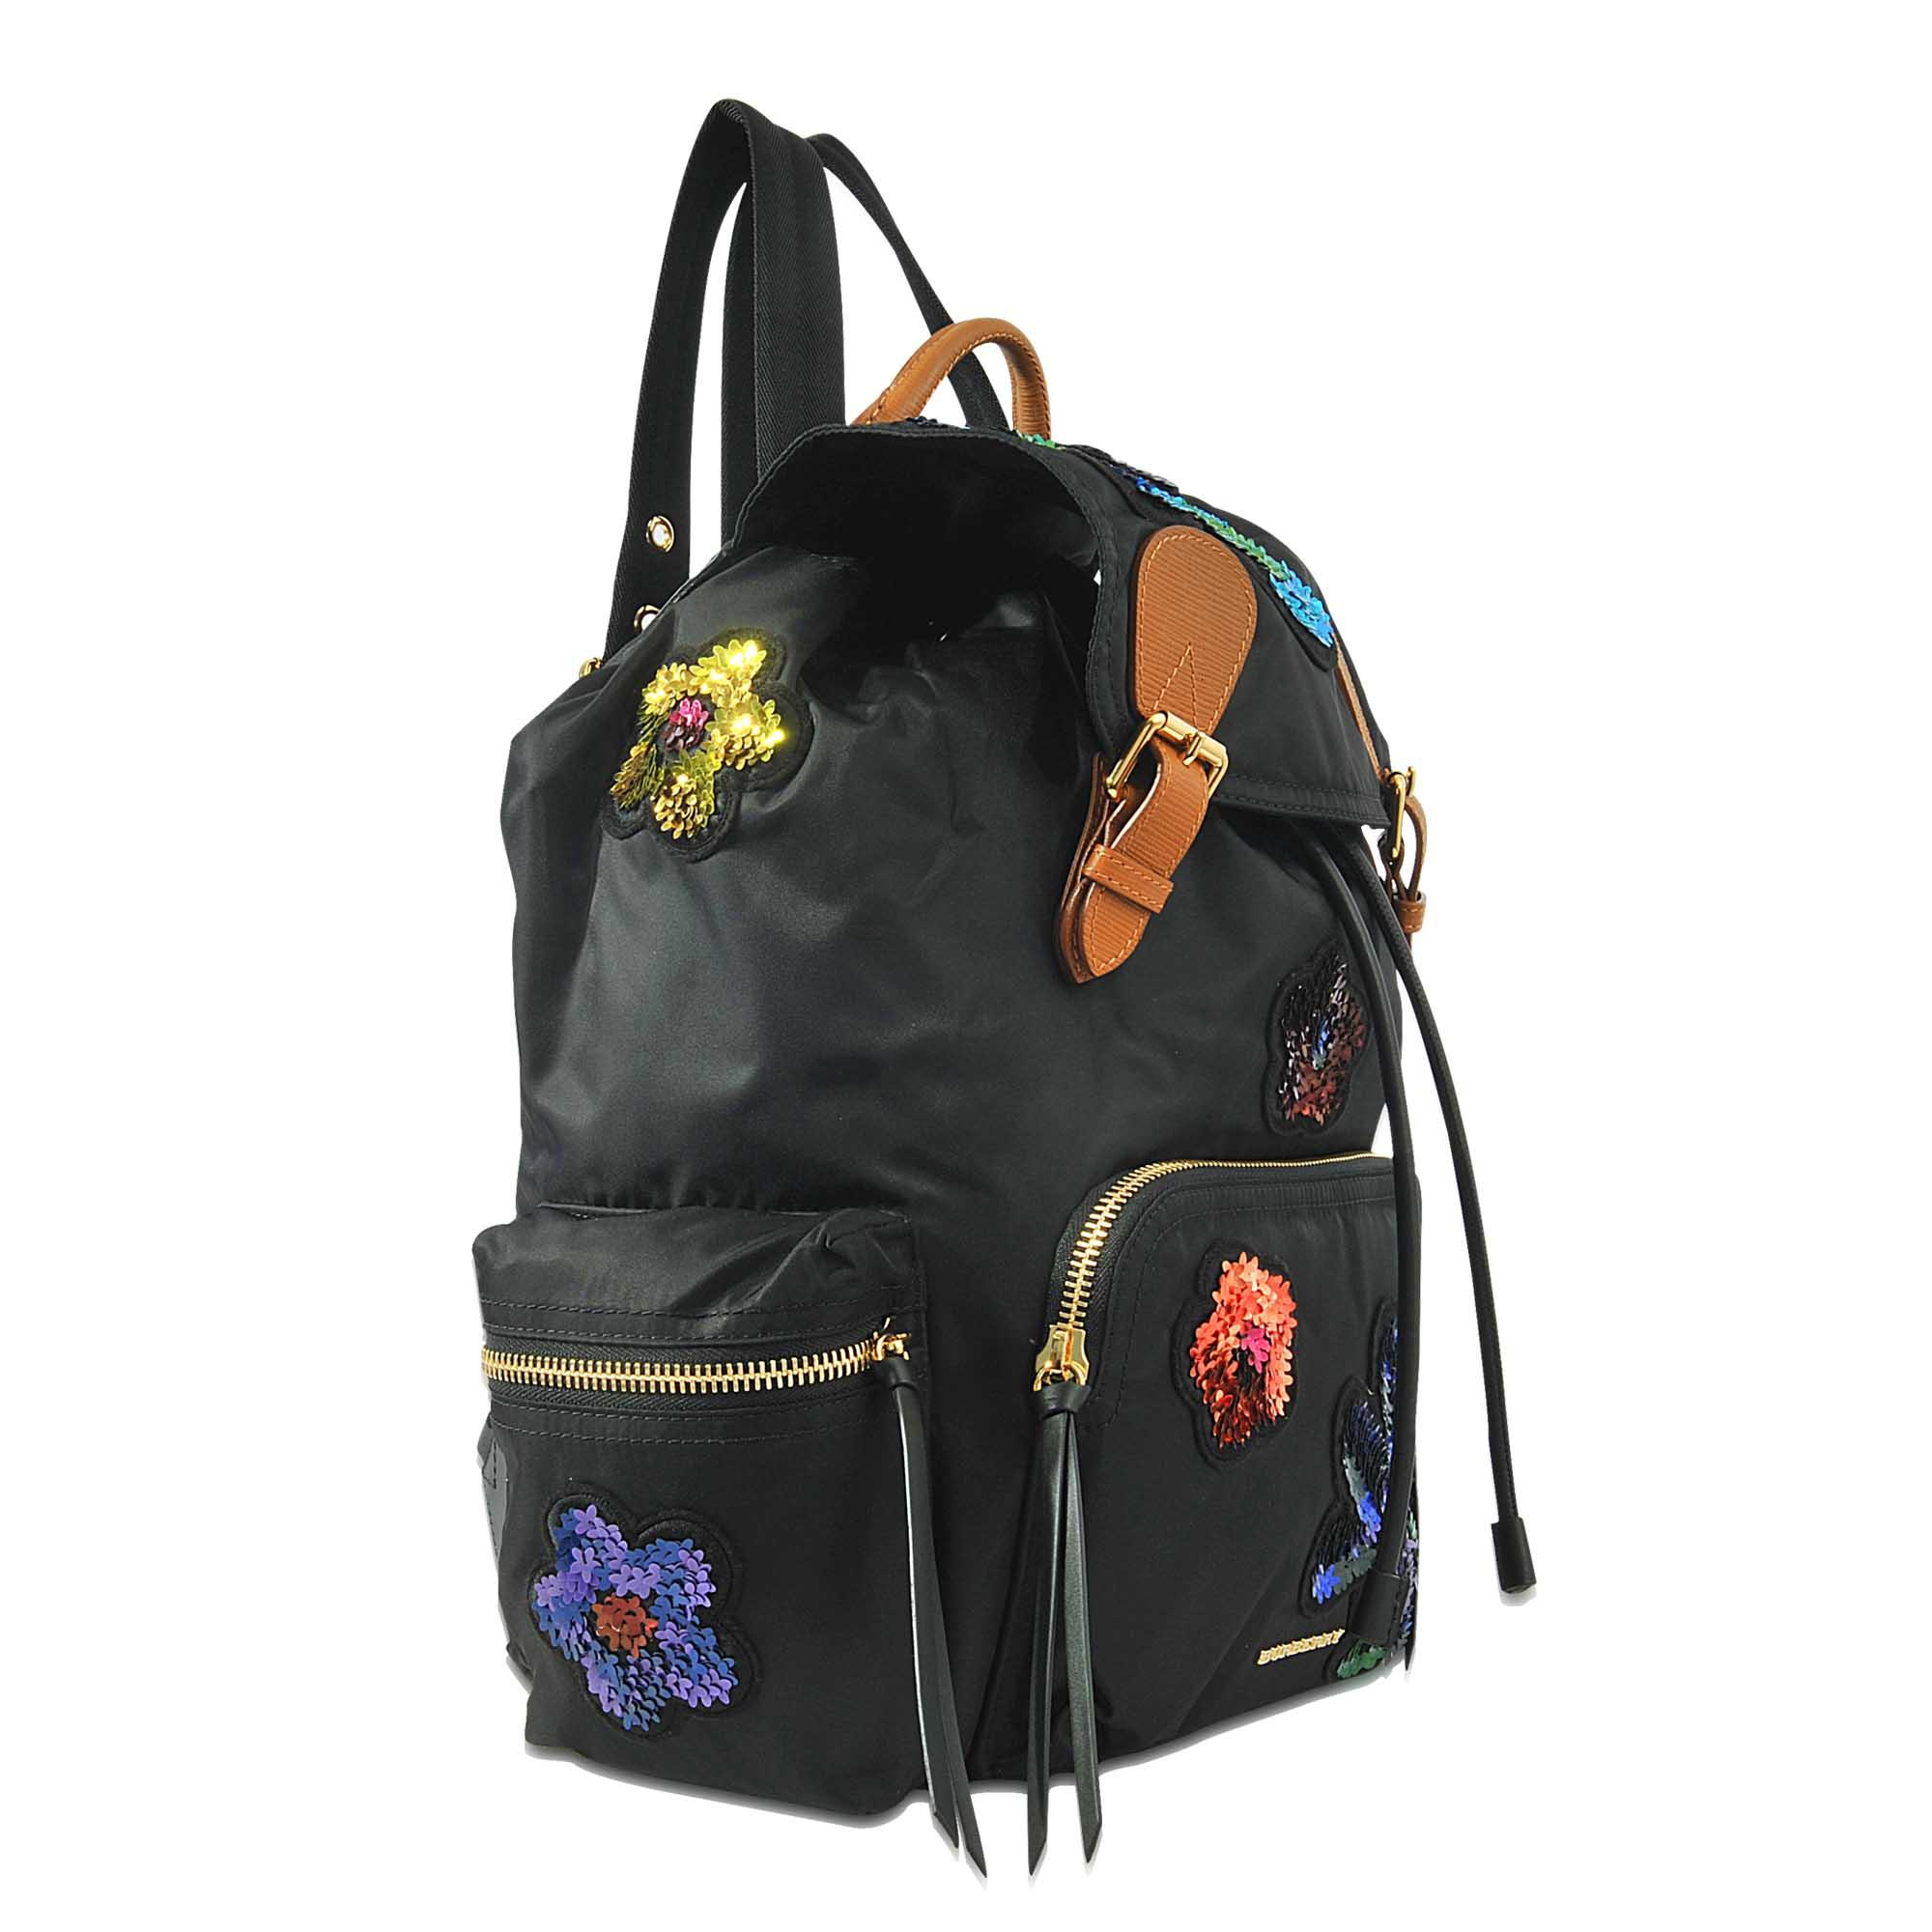 Burberry Synthetic Rucksack Backpack Sequin Flowers